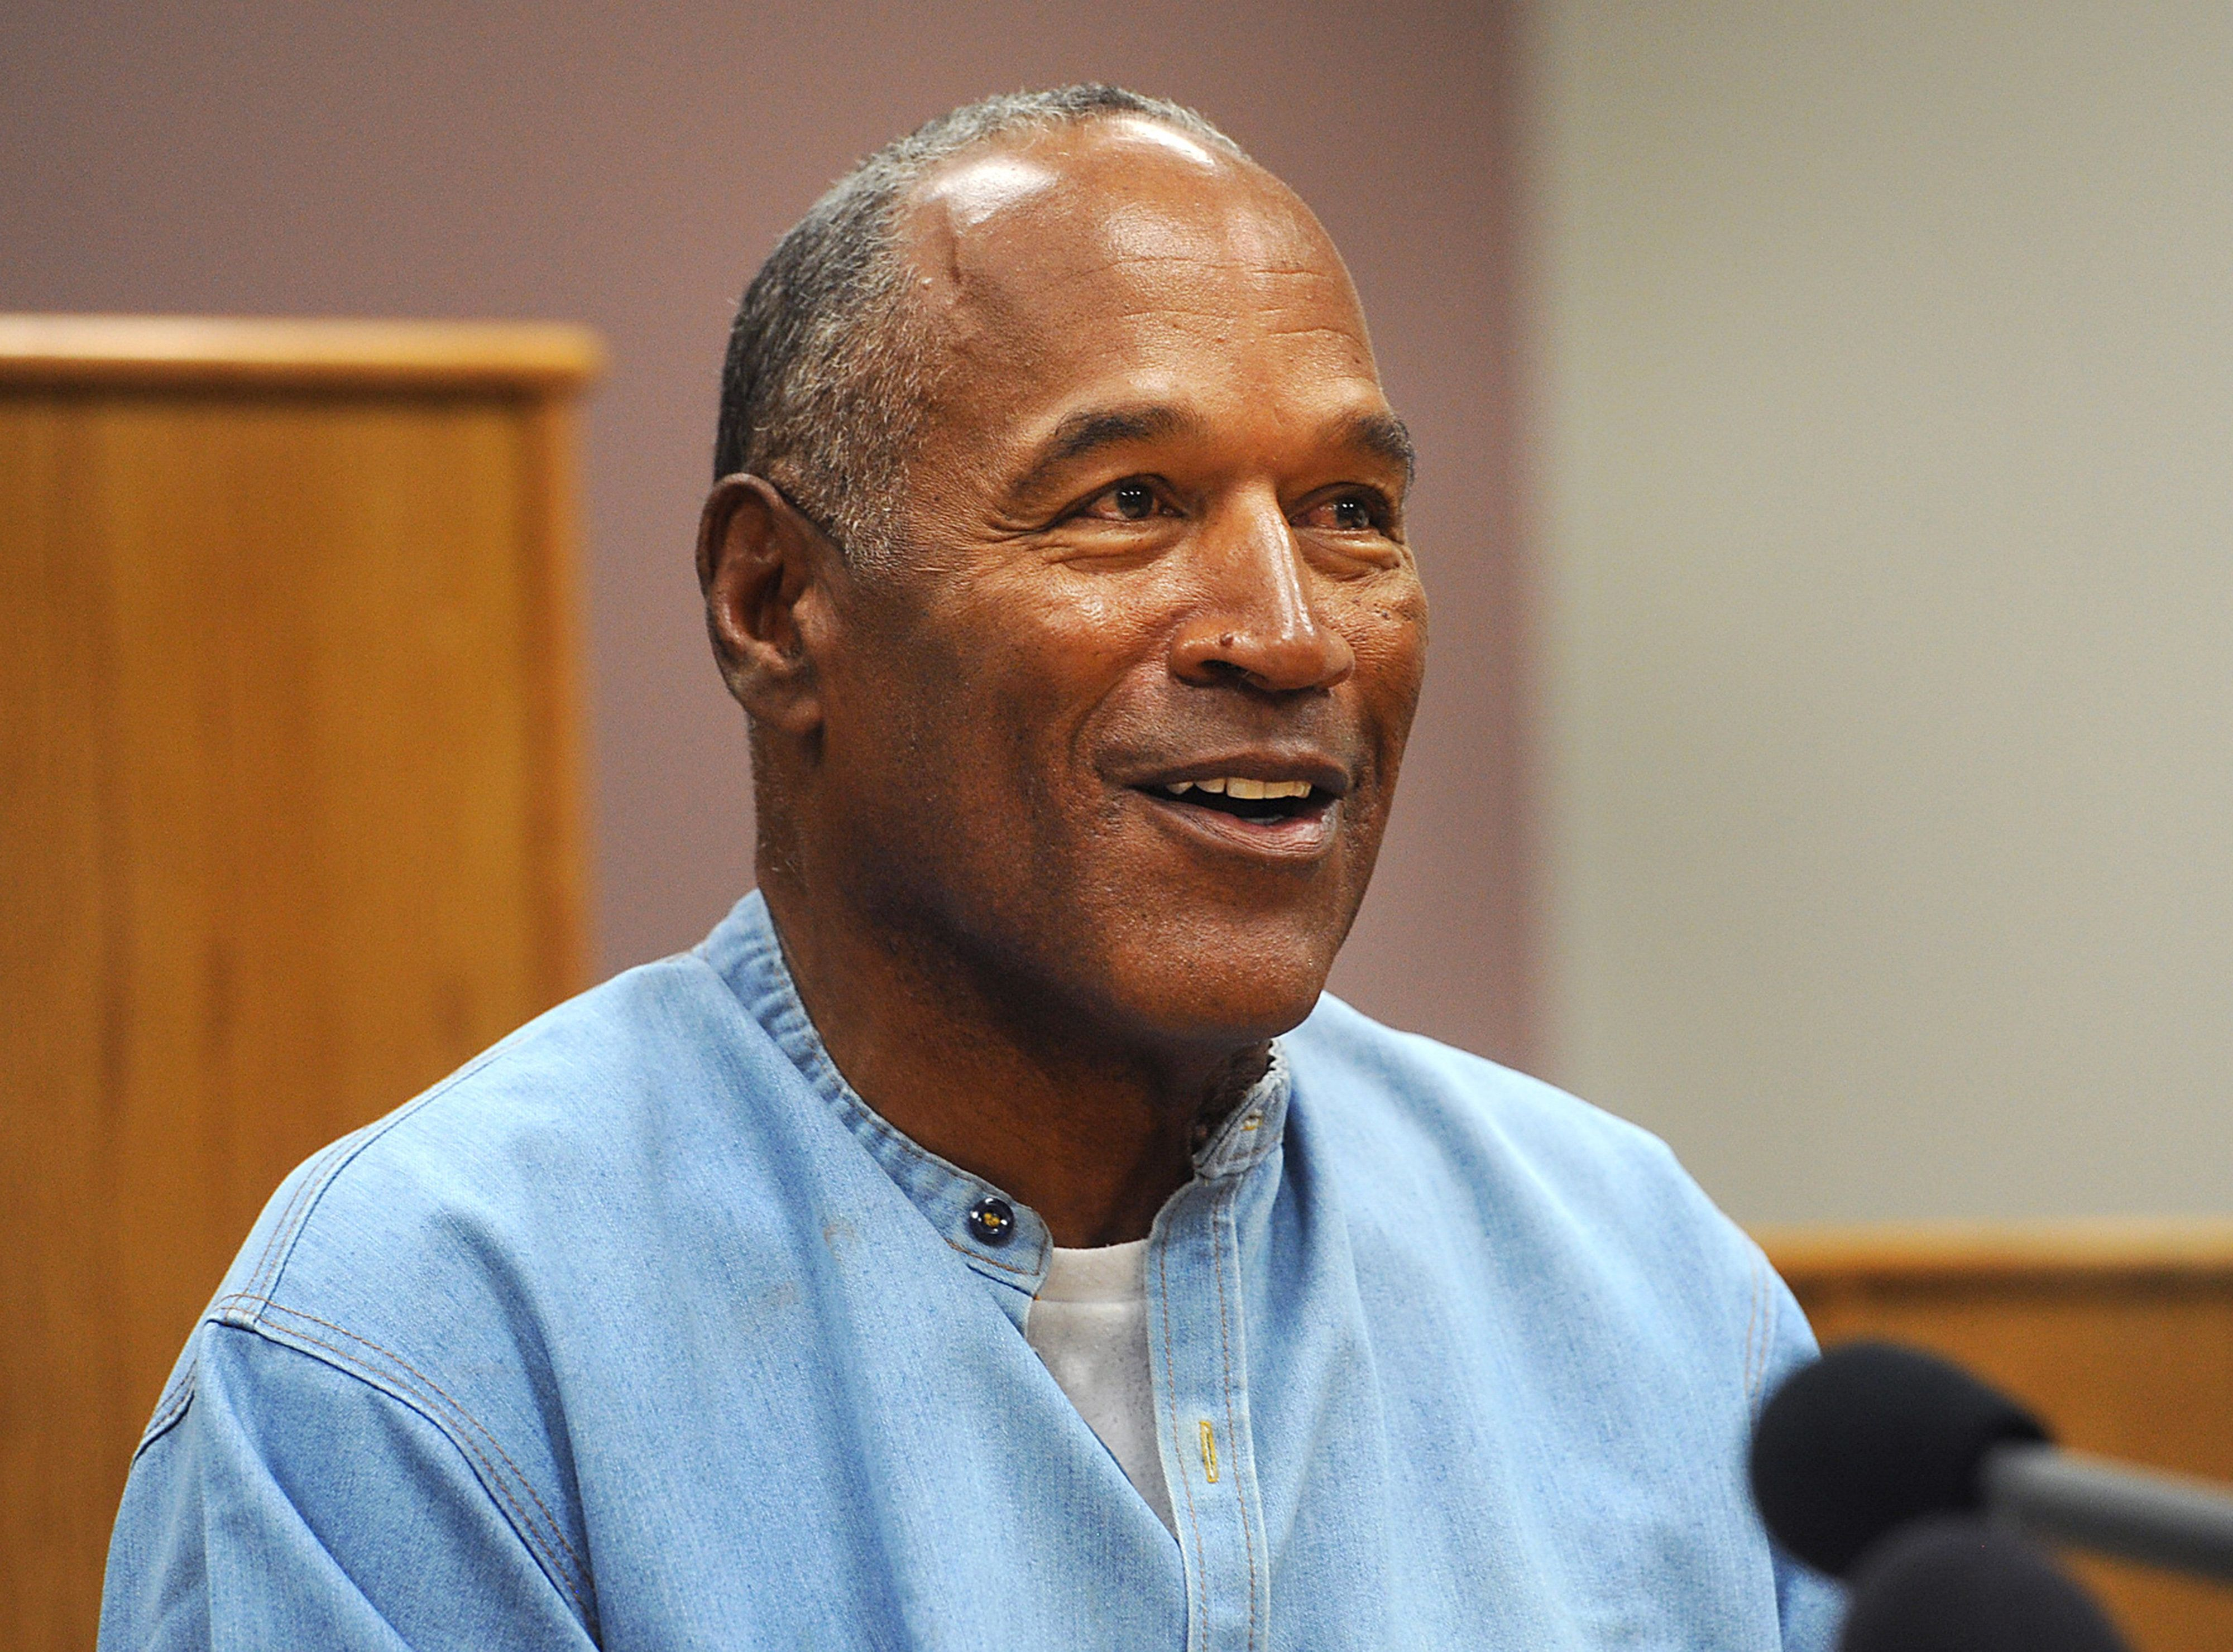 Former professional football player O.J. Simpson speaks during a parole hearing at Lovelock Correctional Center in Lovelock, Nevada, U.S., on Thursday, July 20, 2017. Simpson has been granted parole nine years into a 33-year sentence and could be released as soon as Oct. 1. Photographer: Jason Bean/Pool via Bloomberg